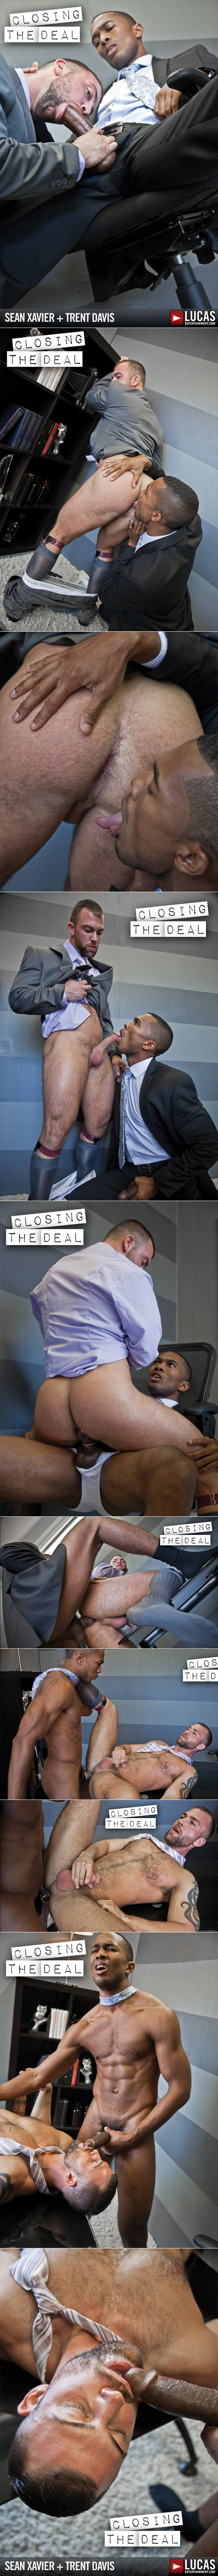 "Lucas Entertainment: Sean Xavier fucks Trent Davis in ""Gentlemen 09: Closing the Deal"""